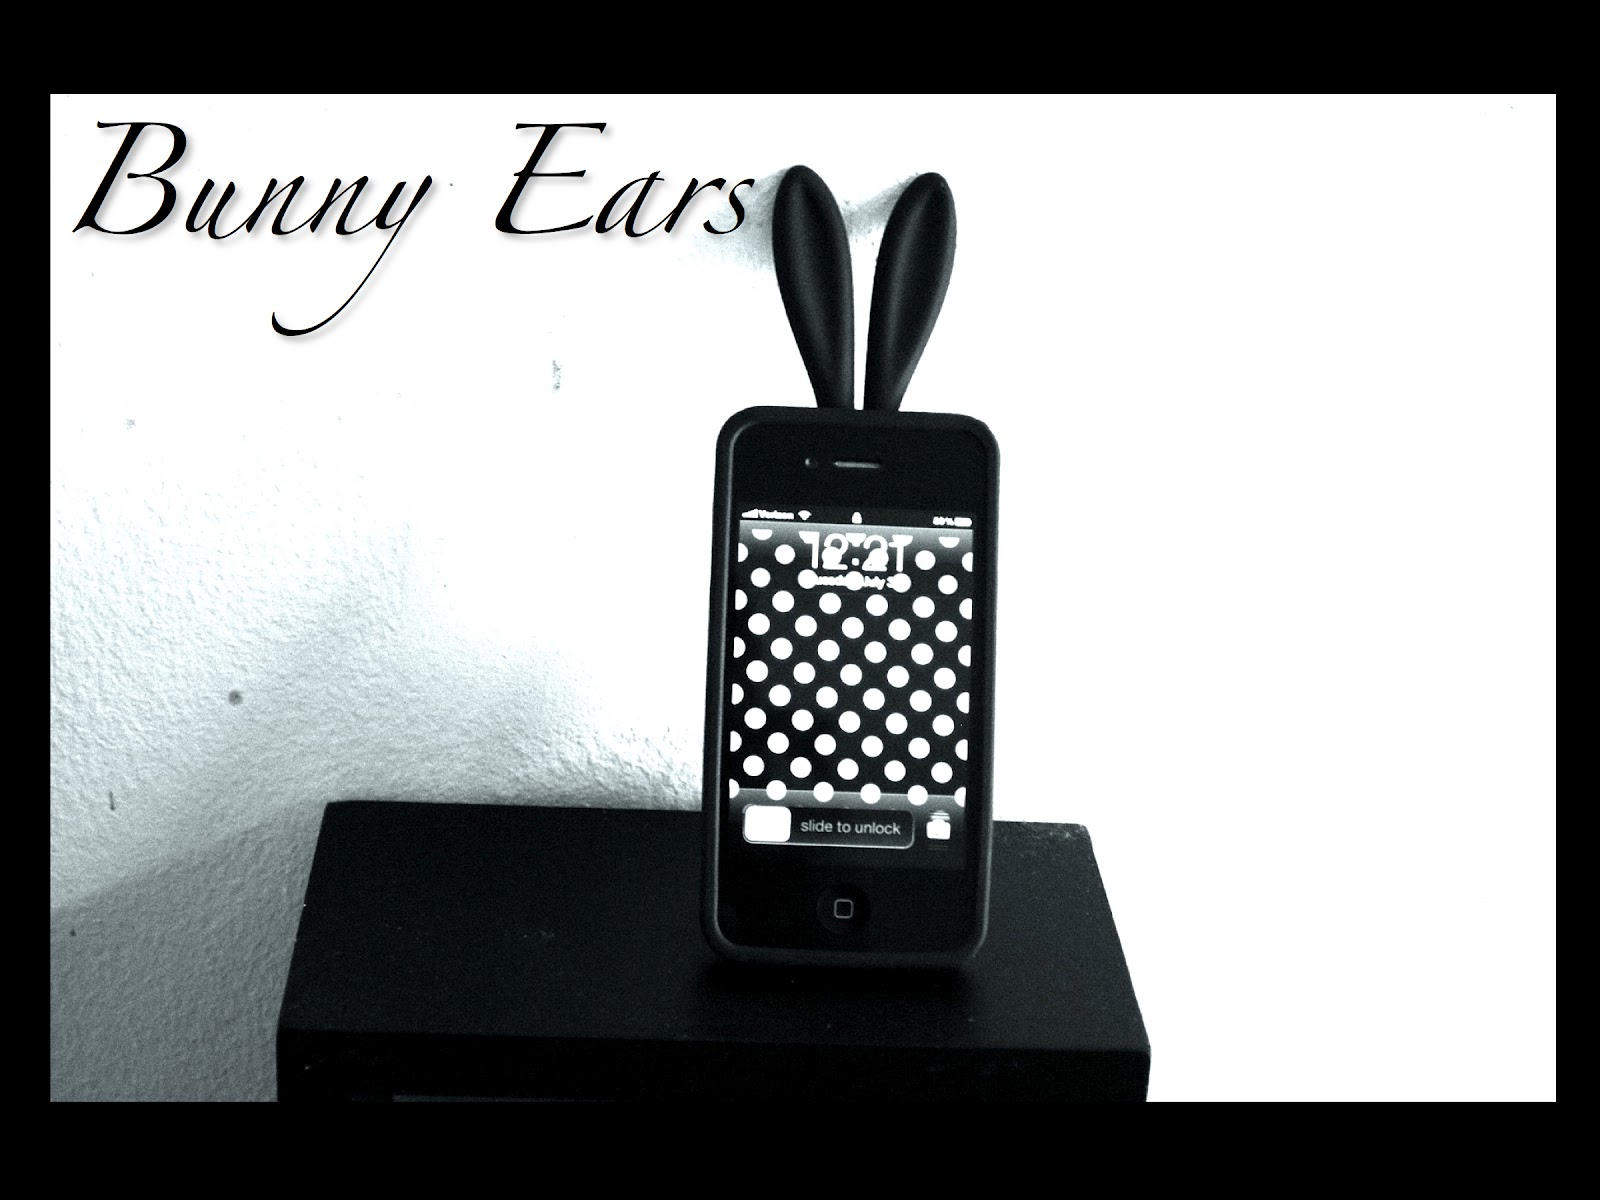 Displaying 18u0026gt; Images For - Iphone 4 Cases Bunny Ears...